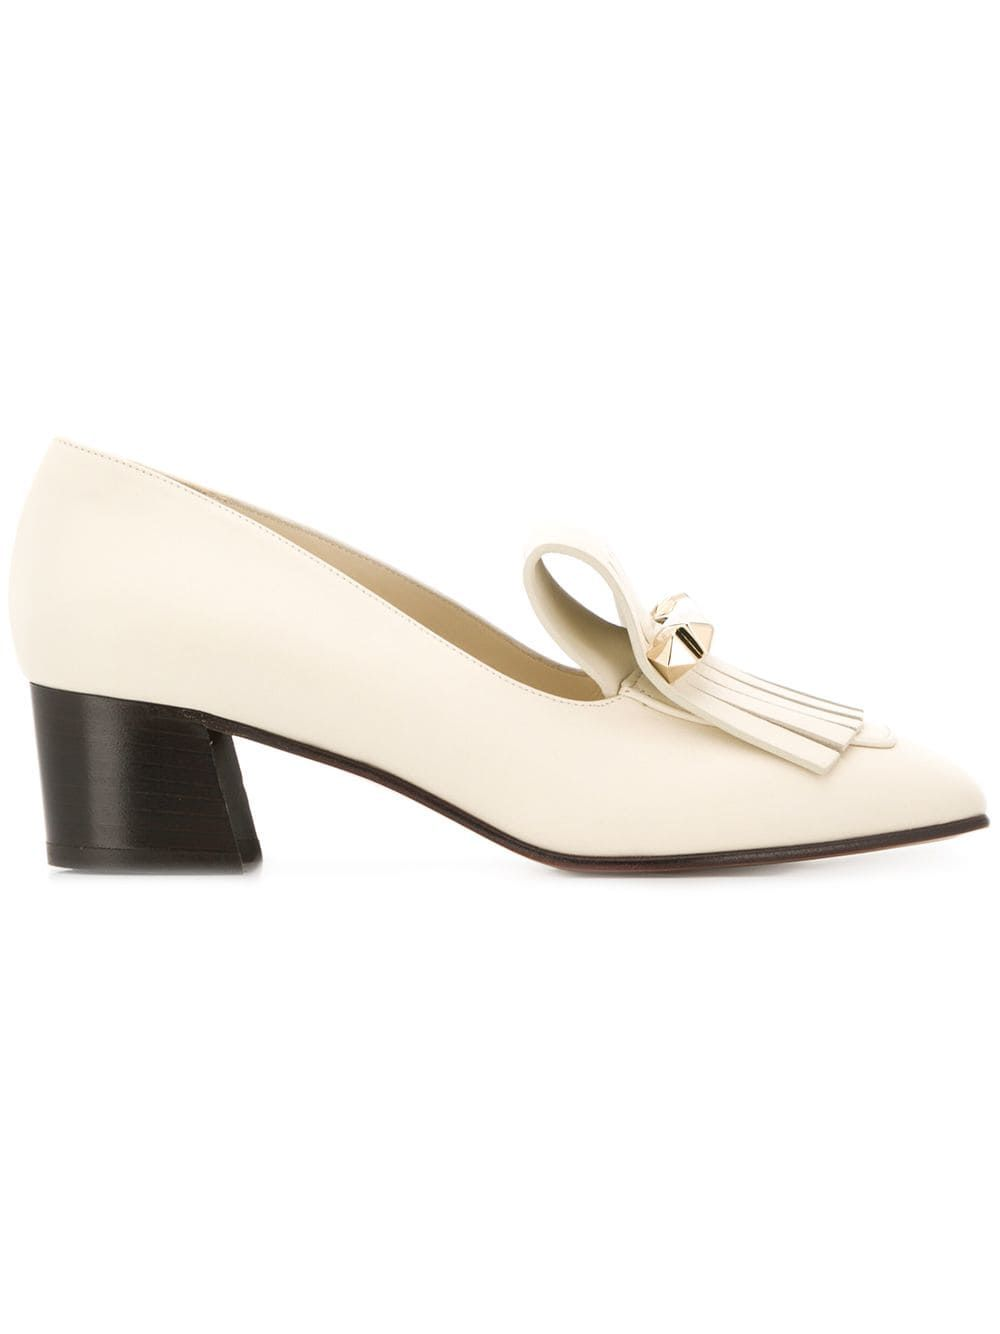 Valentino Garavani Uptown Loafers Valentino farfetch.com $975.00 SHOP NOW Prefer a closed-toe shoe during the summer? Go with this pair of loafers.